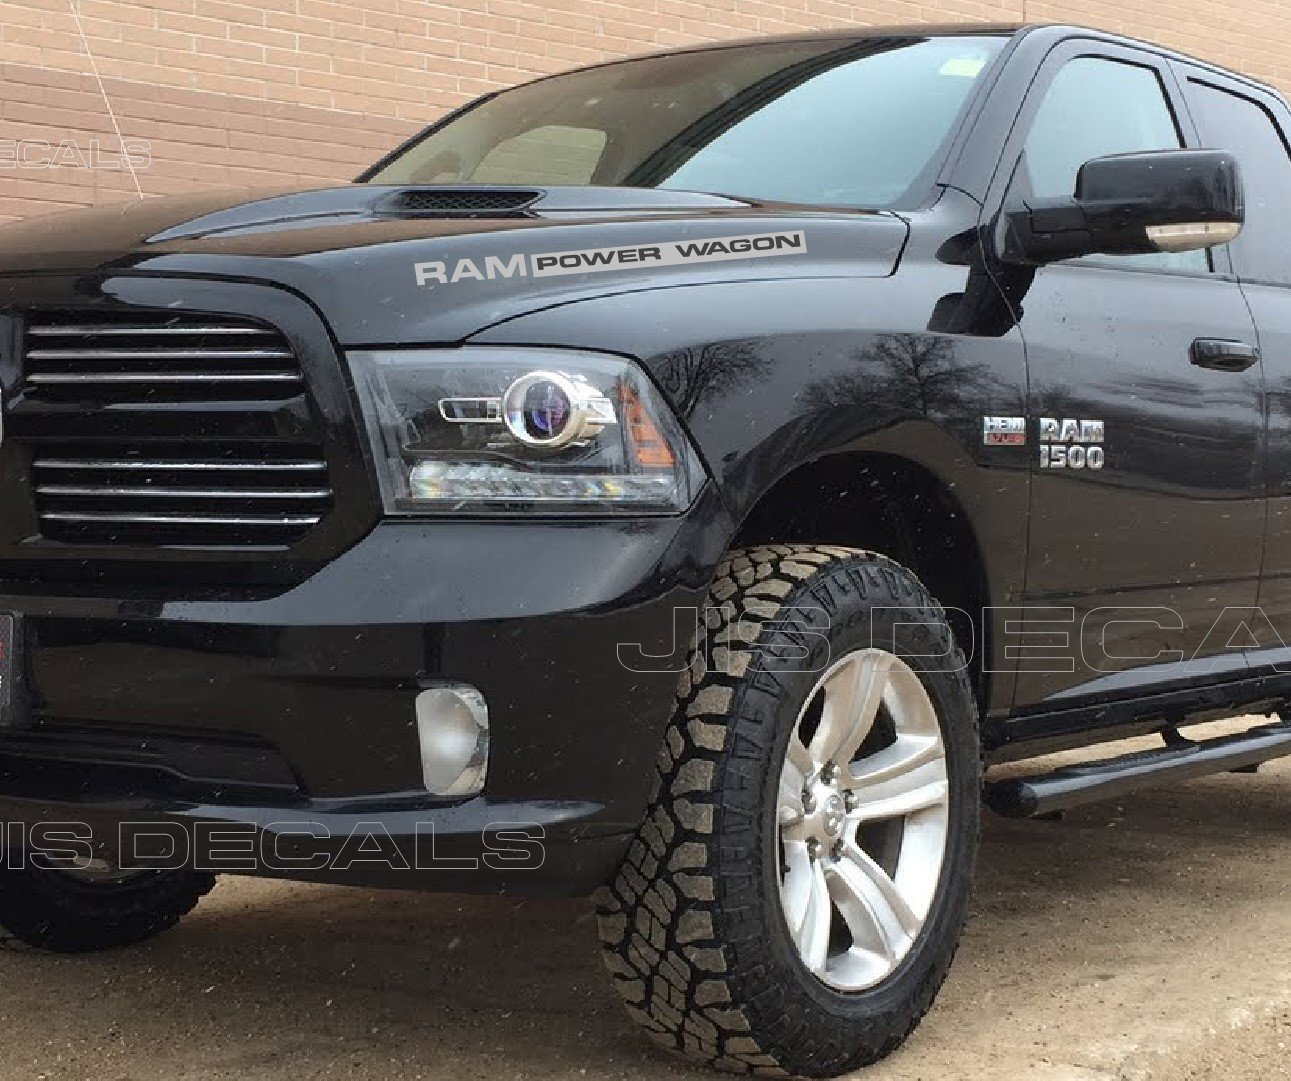 Amazon com jis decals generic dodge ram power wagon hood decals 2 decals gray 32 inch automotive